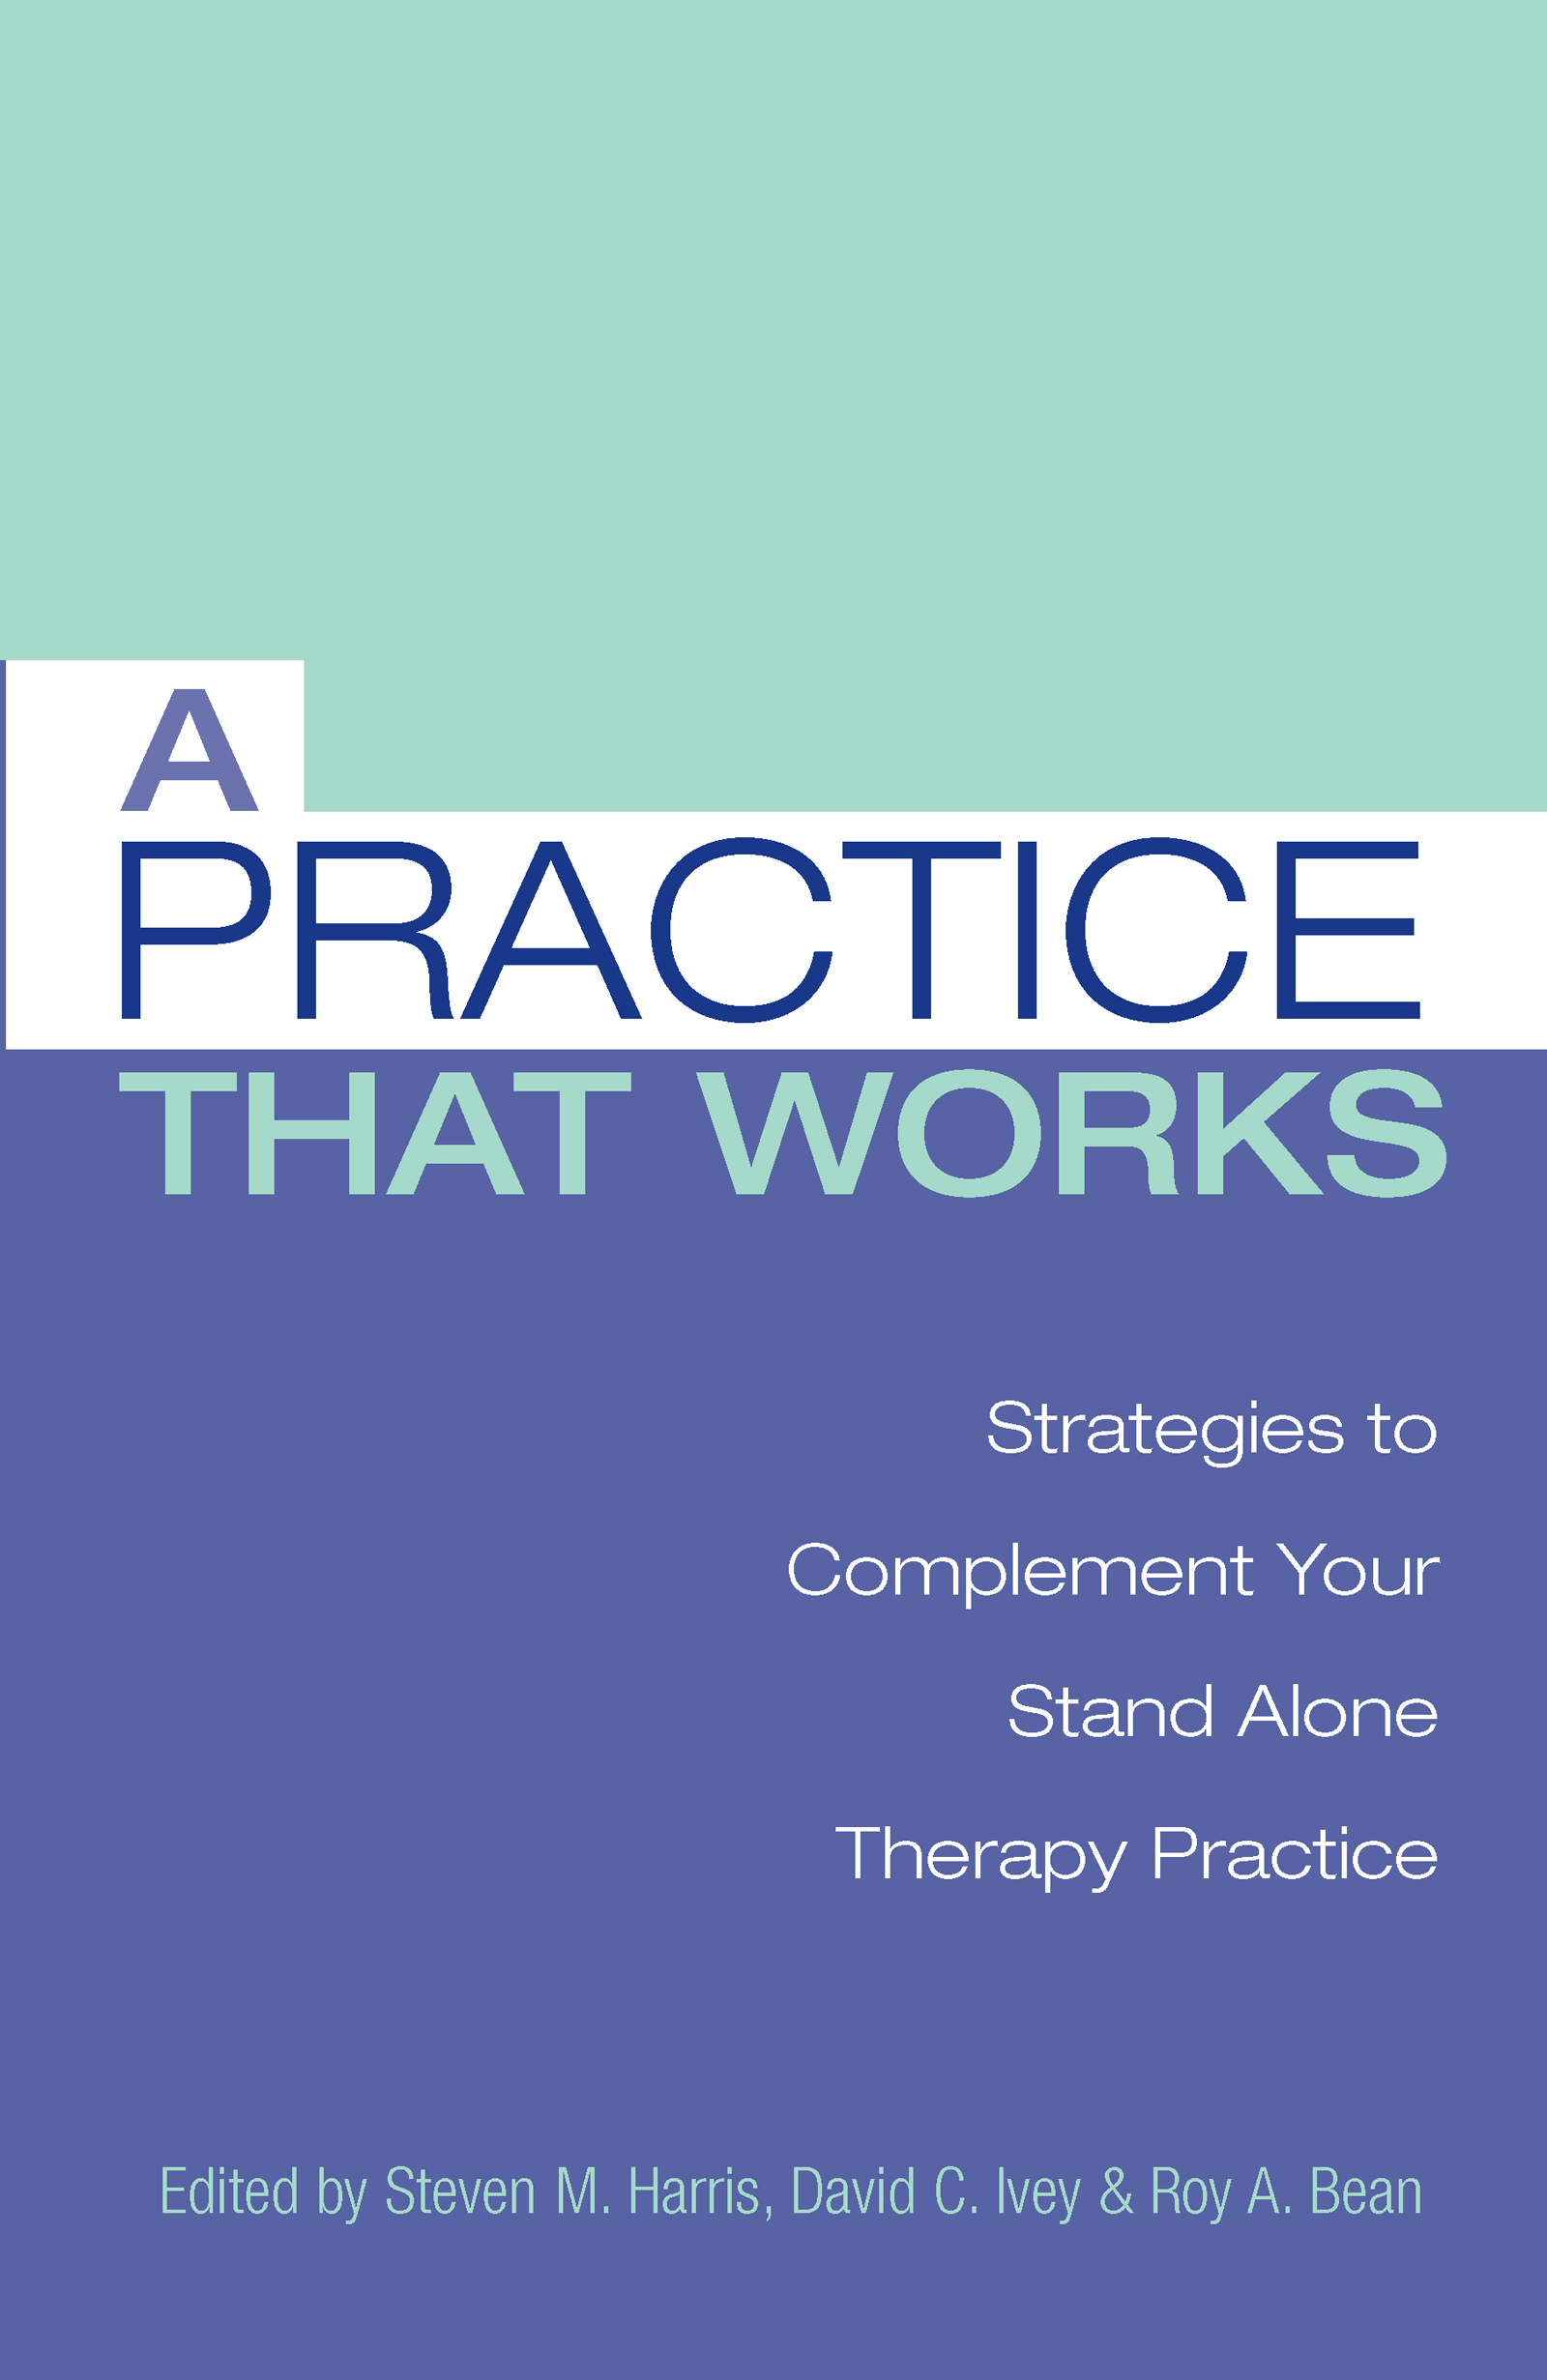 A Practice that Works: Strategies to Complement Your Stand Alone Therapy Practice (Hardback) book cover